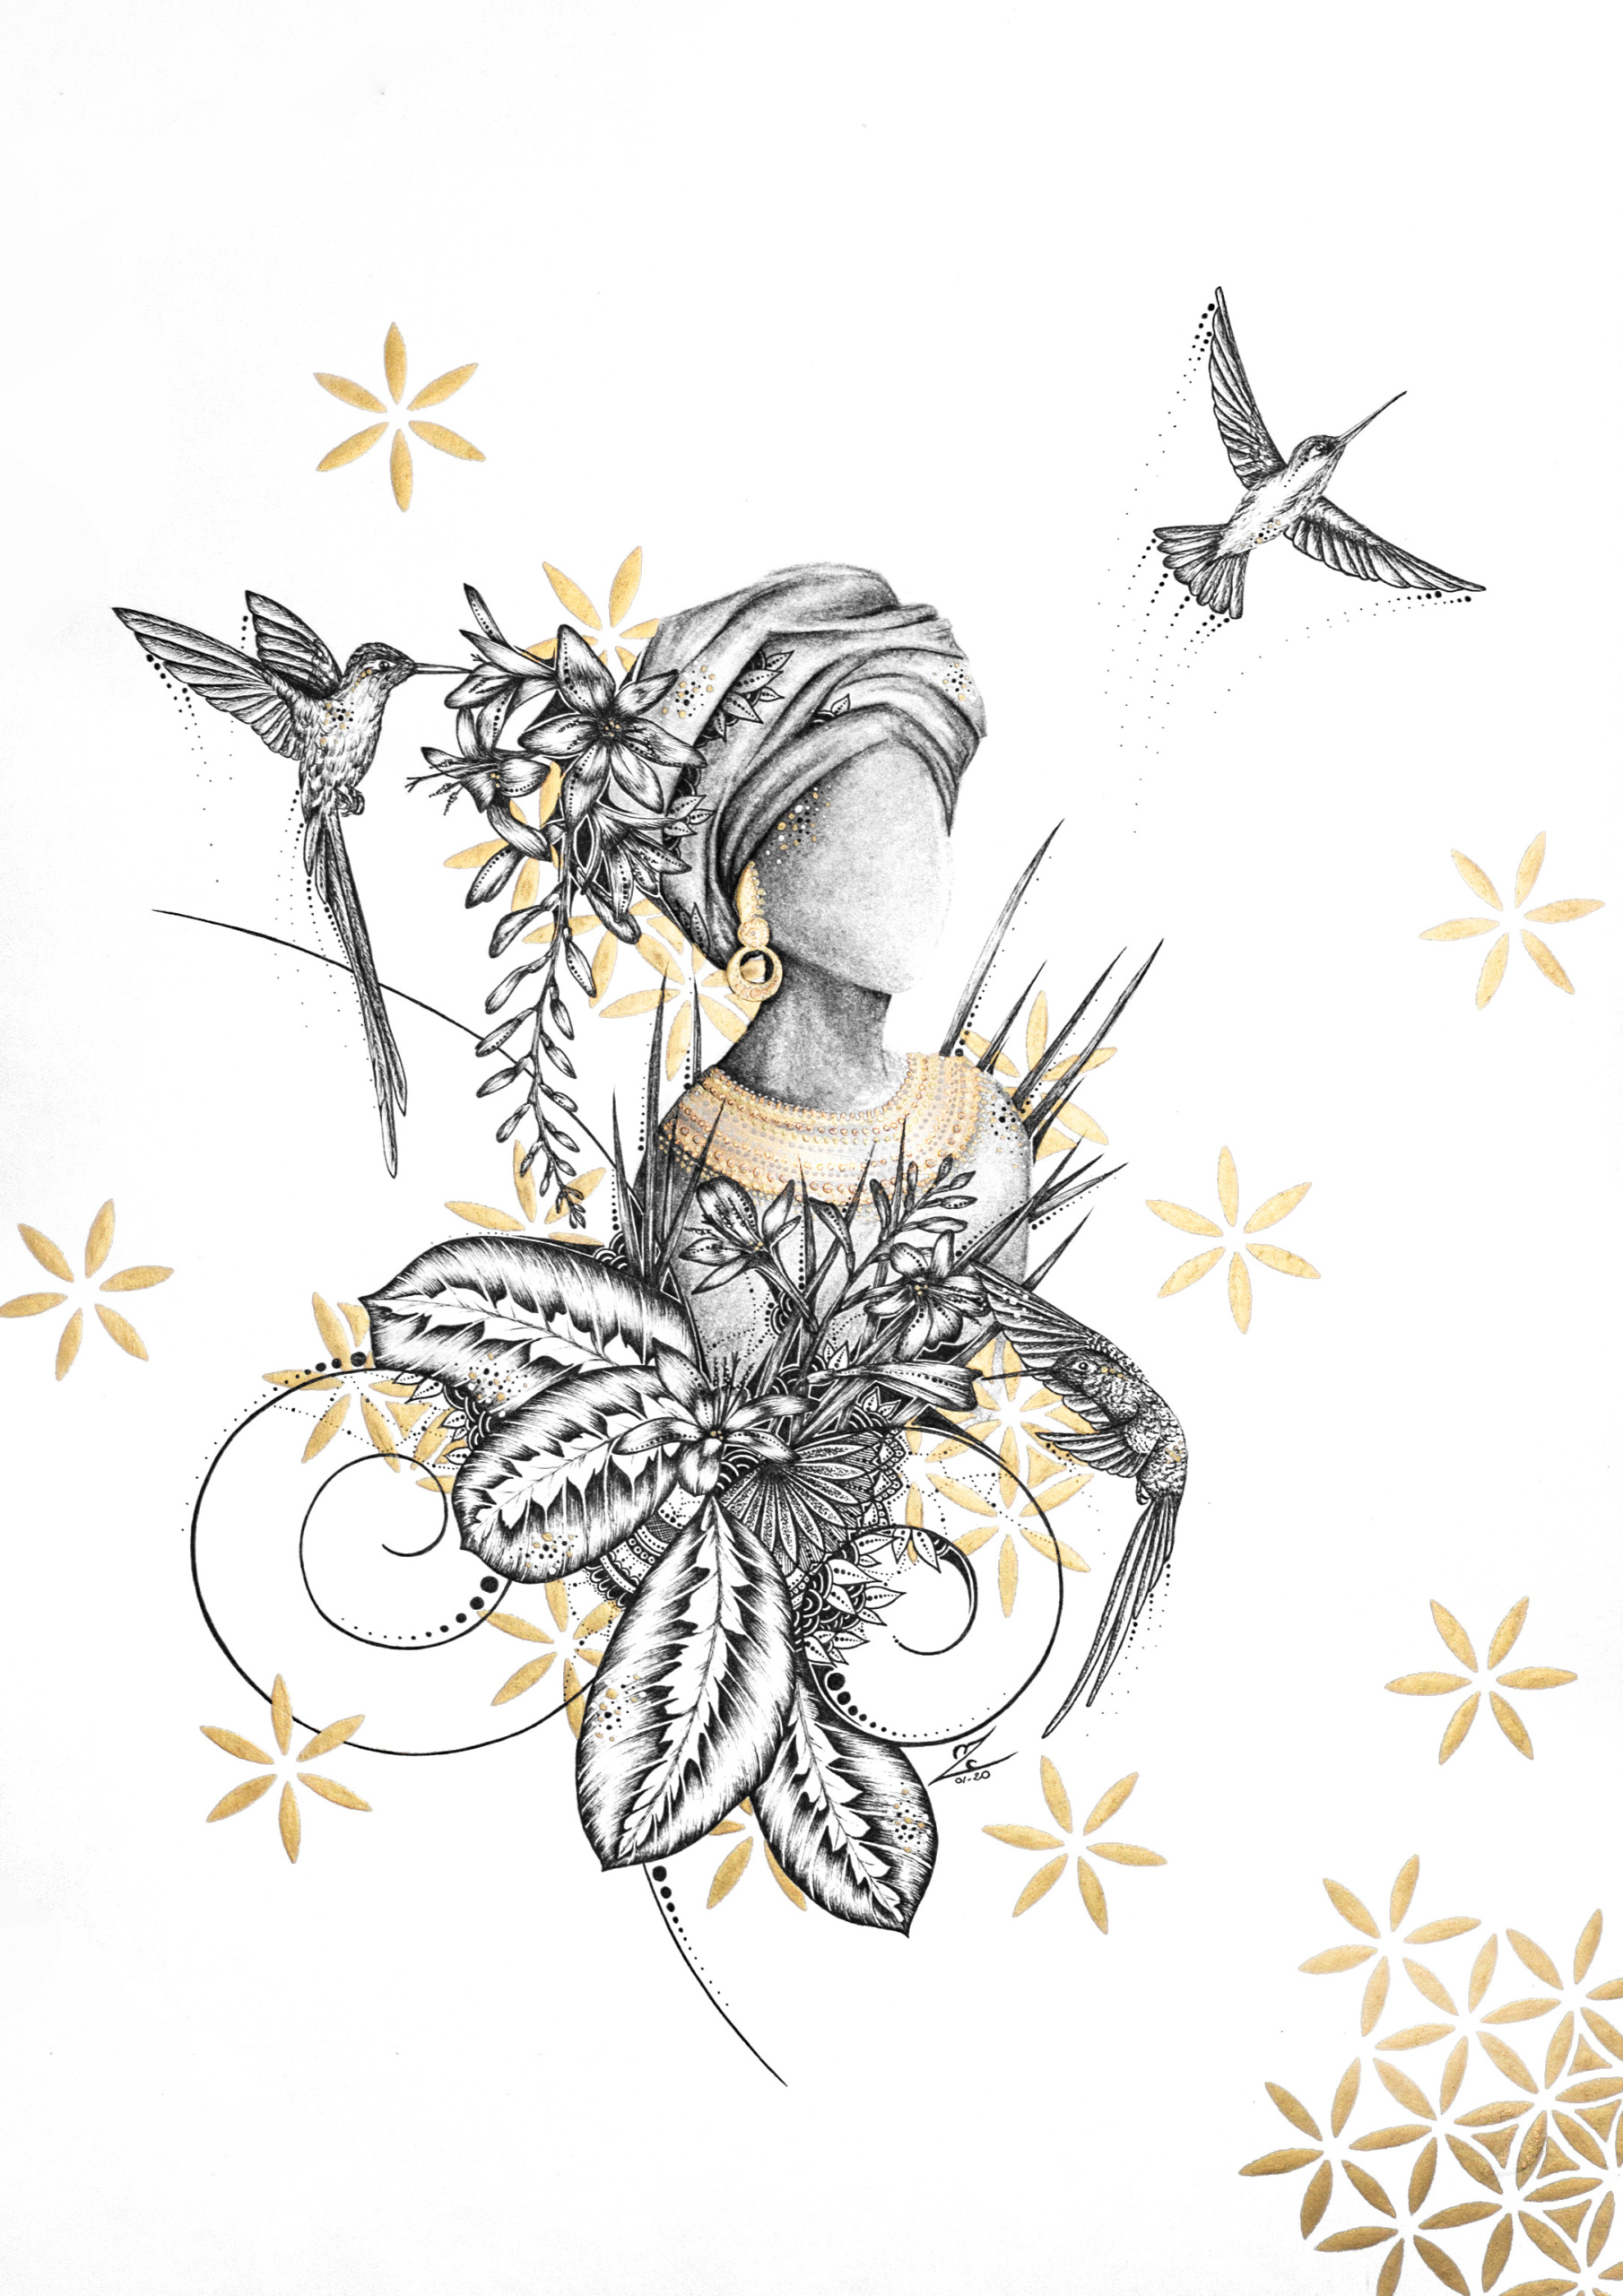 La Demoiselle aux Colibris - Original Drawing 29,7cmx42cm - 500€